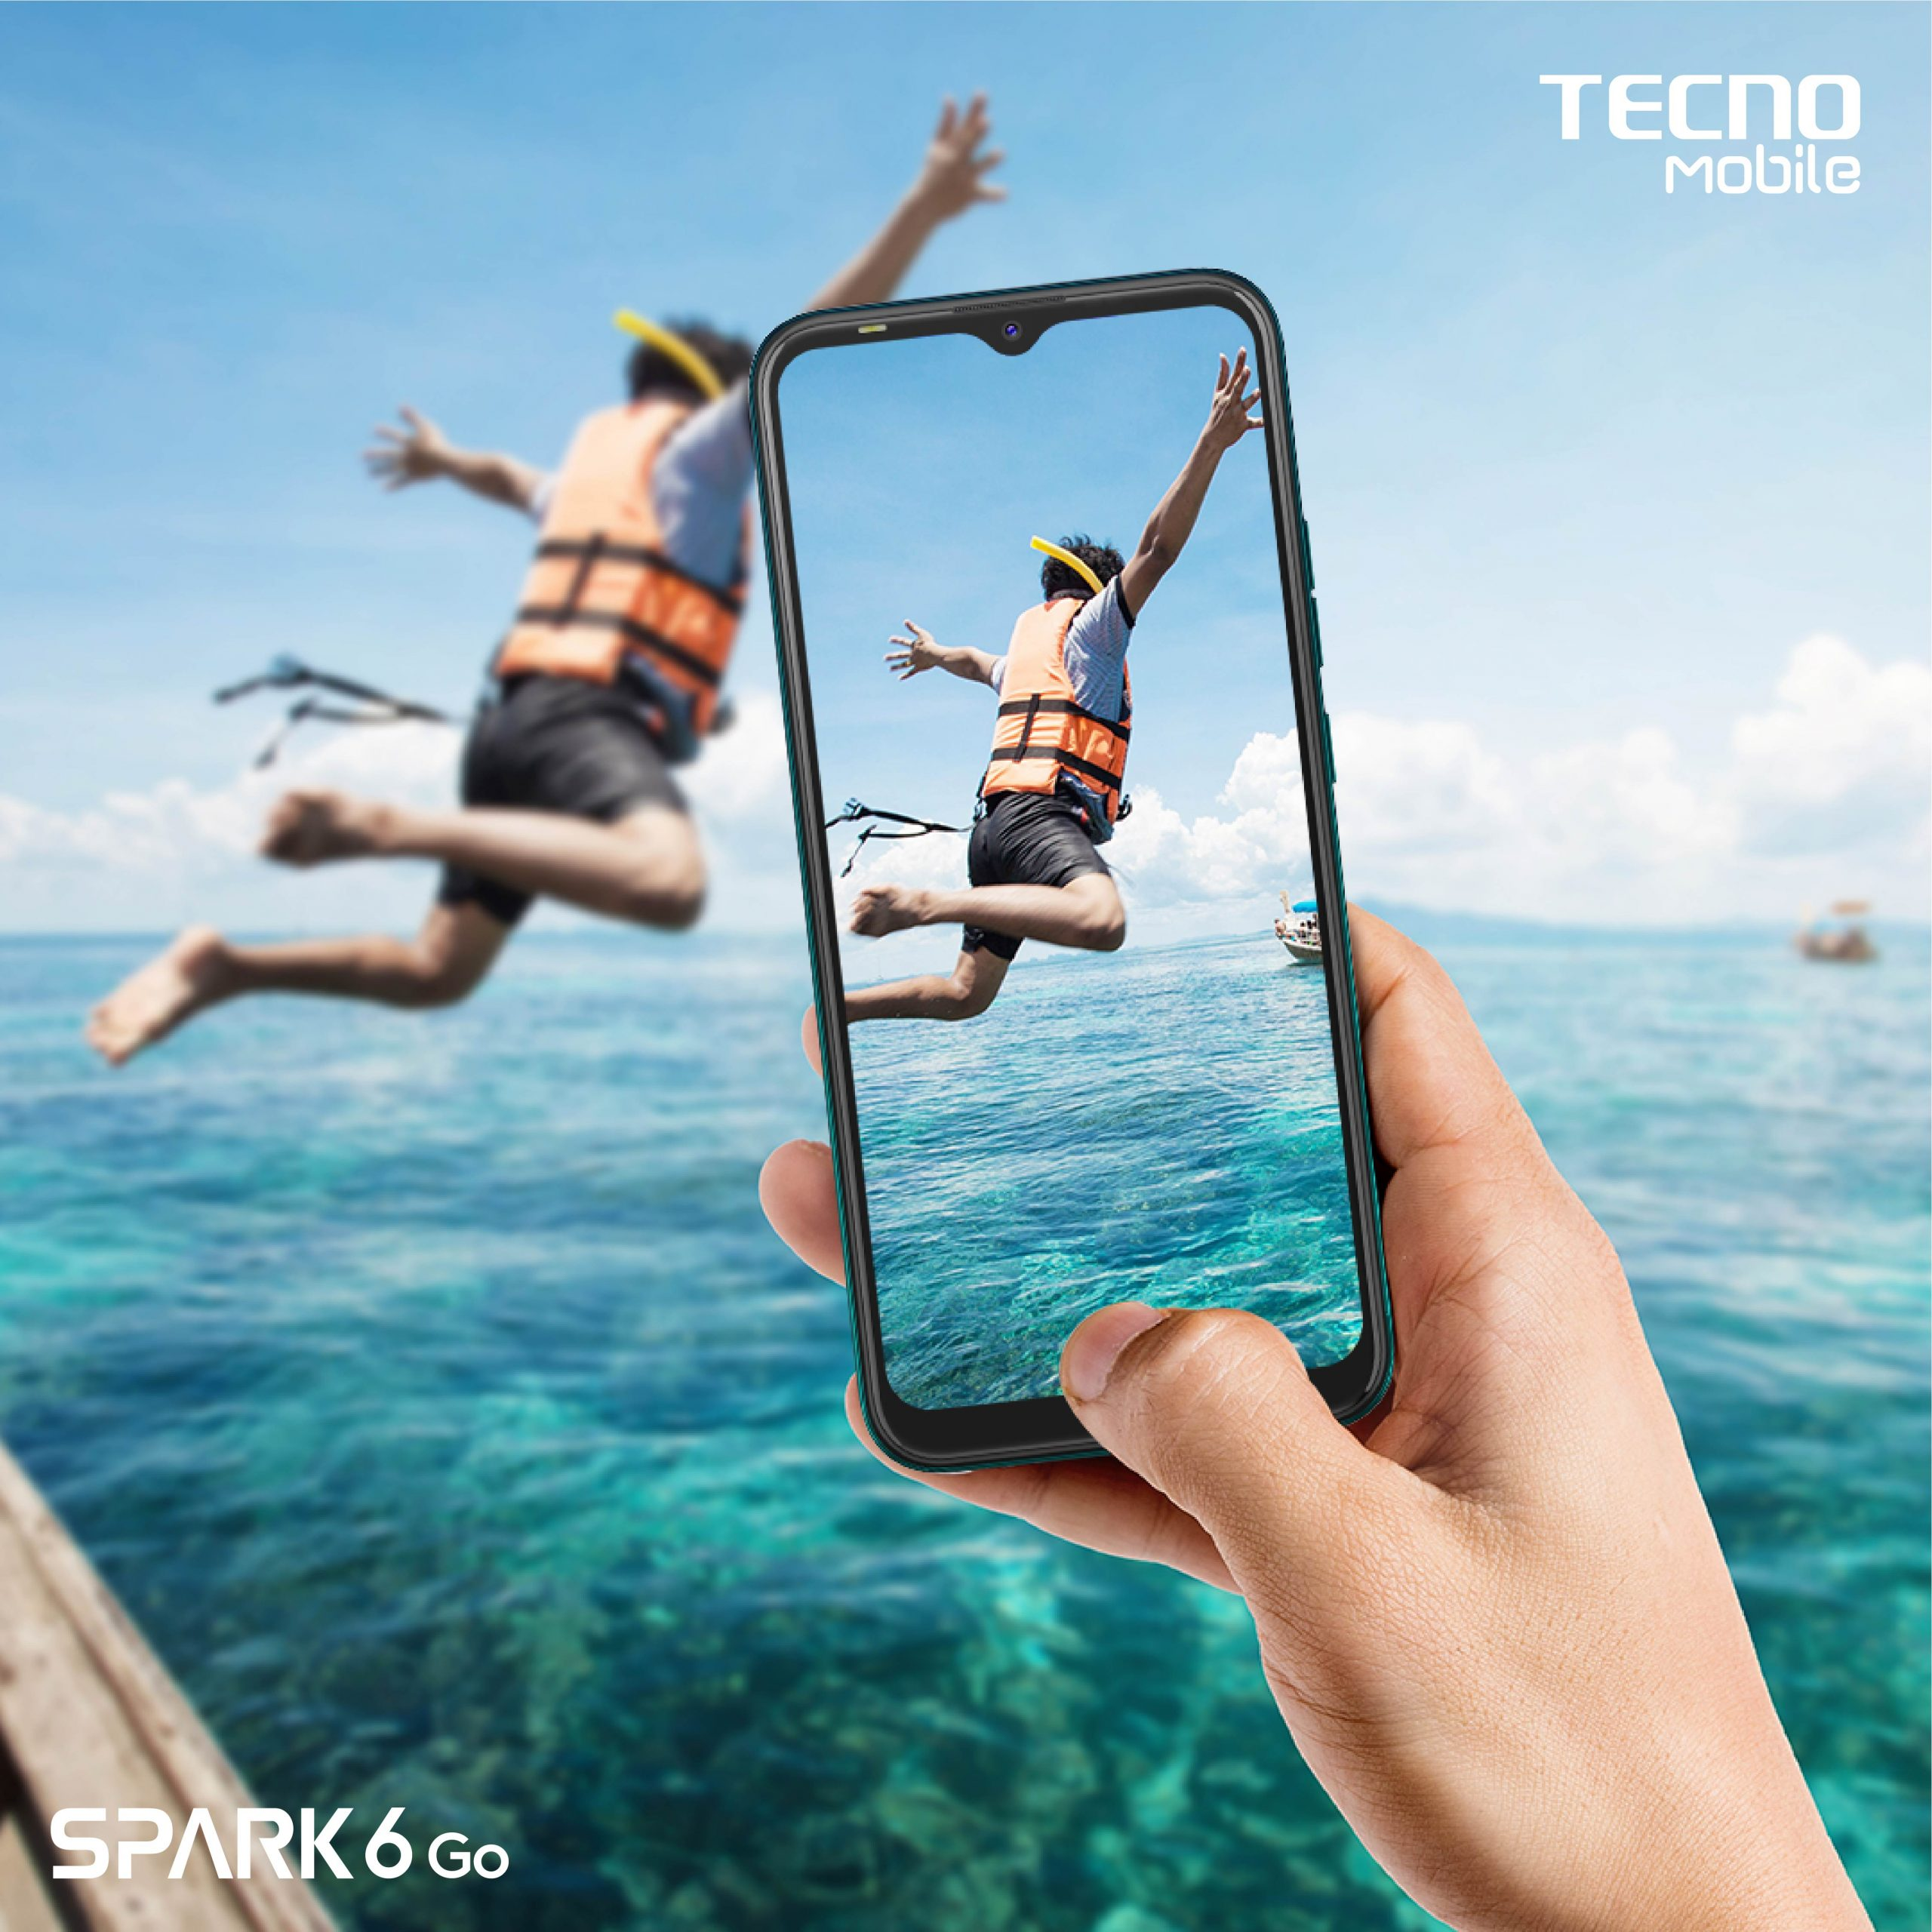 TECNO Mobile sparks up this summer with engaging livestreams and overflowing giveaways